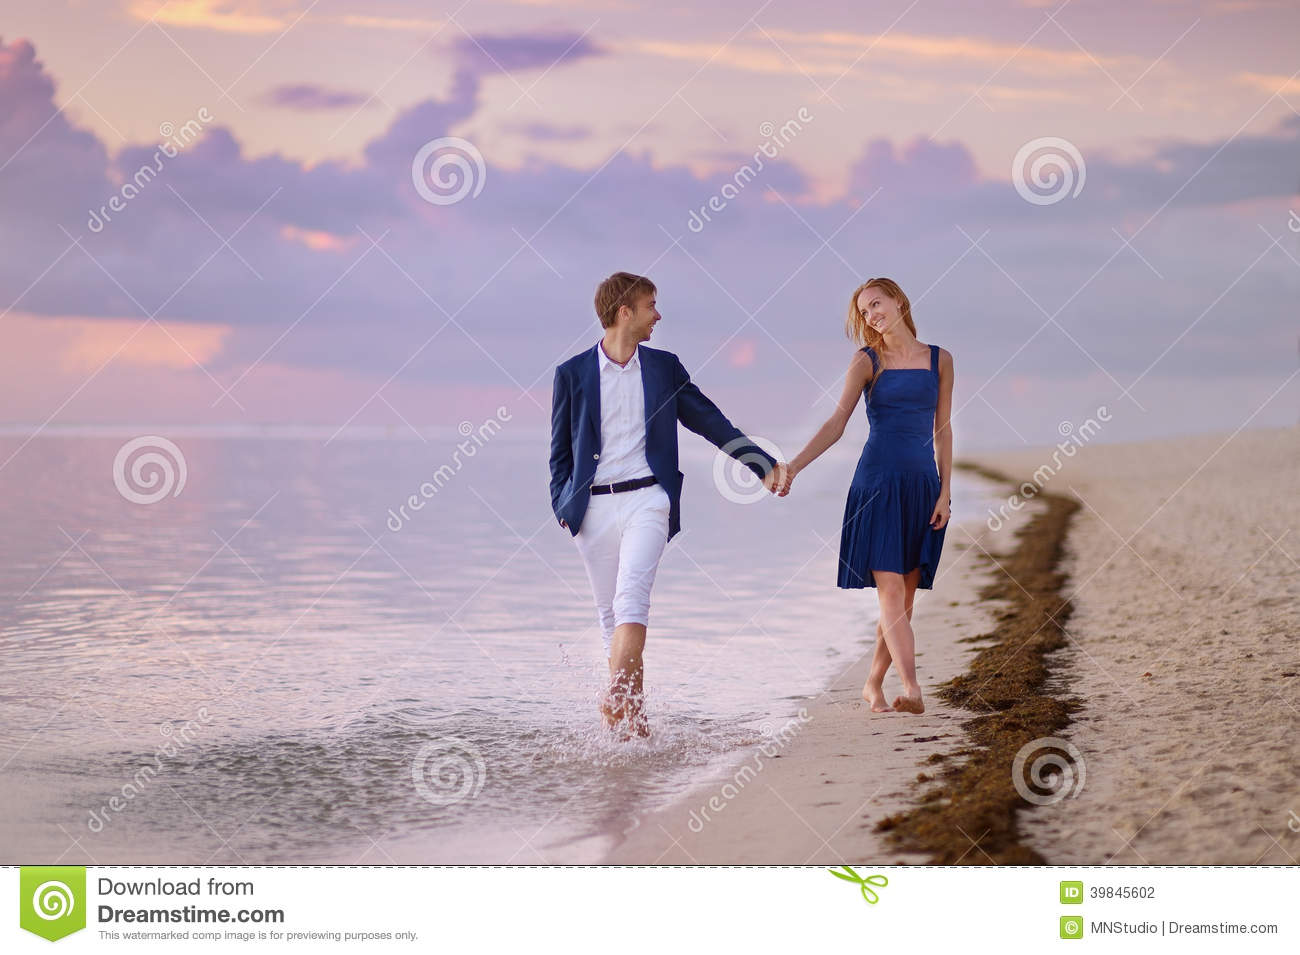 Romantic Pictures Of Tropical Beaches: Beautiful Romantic Couple On A Tropical Beach Stock Photo